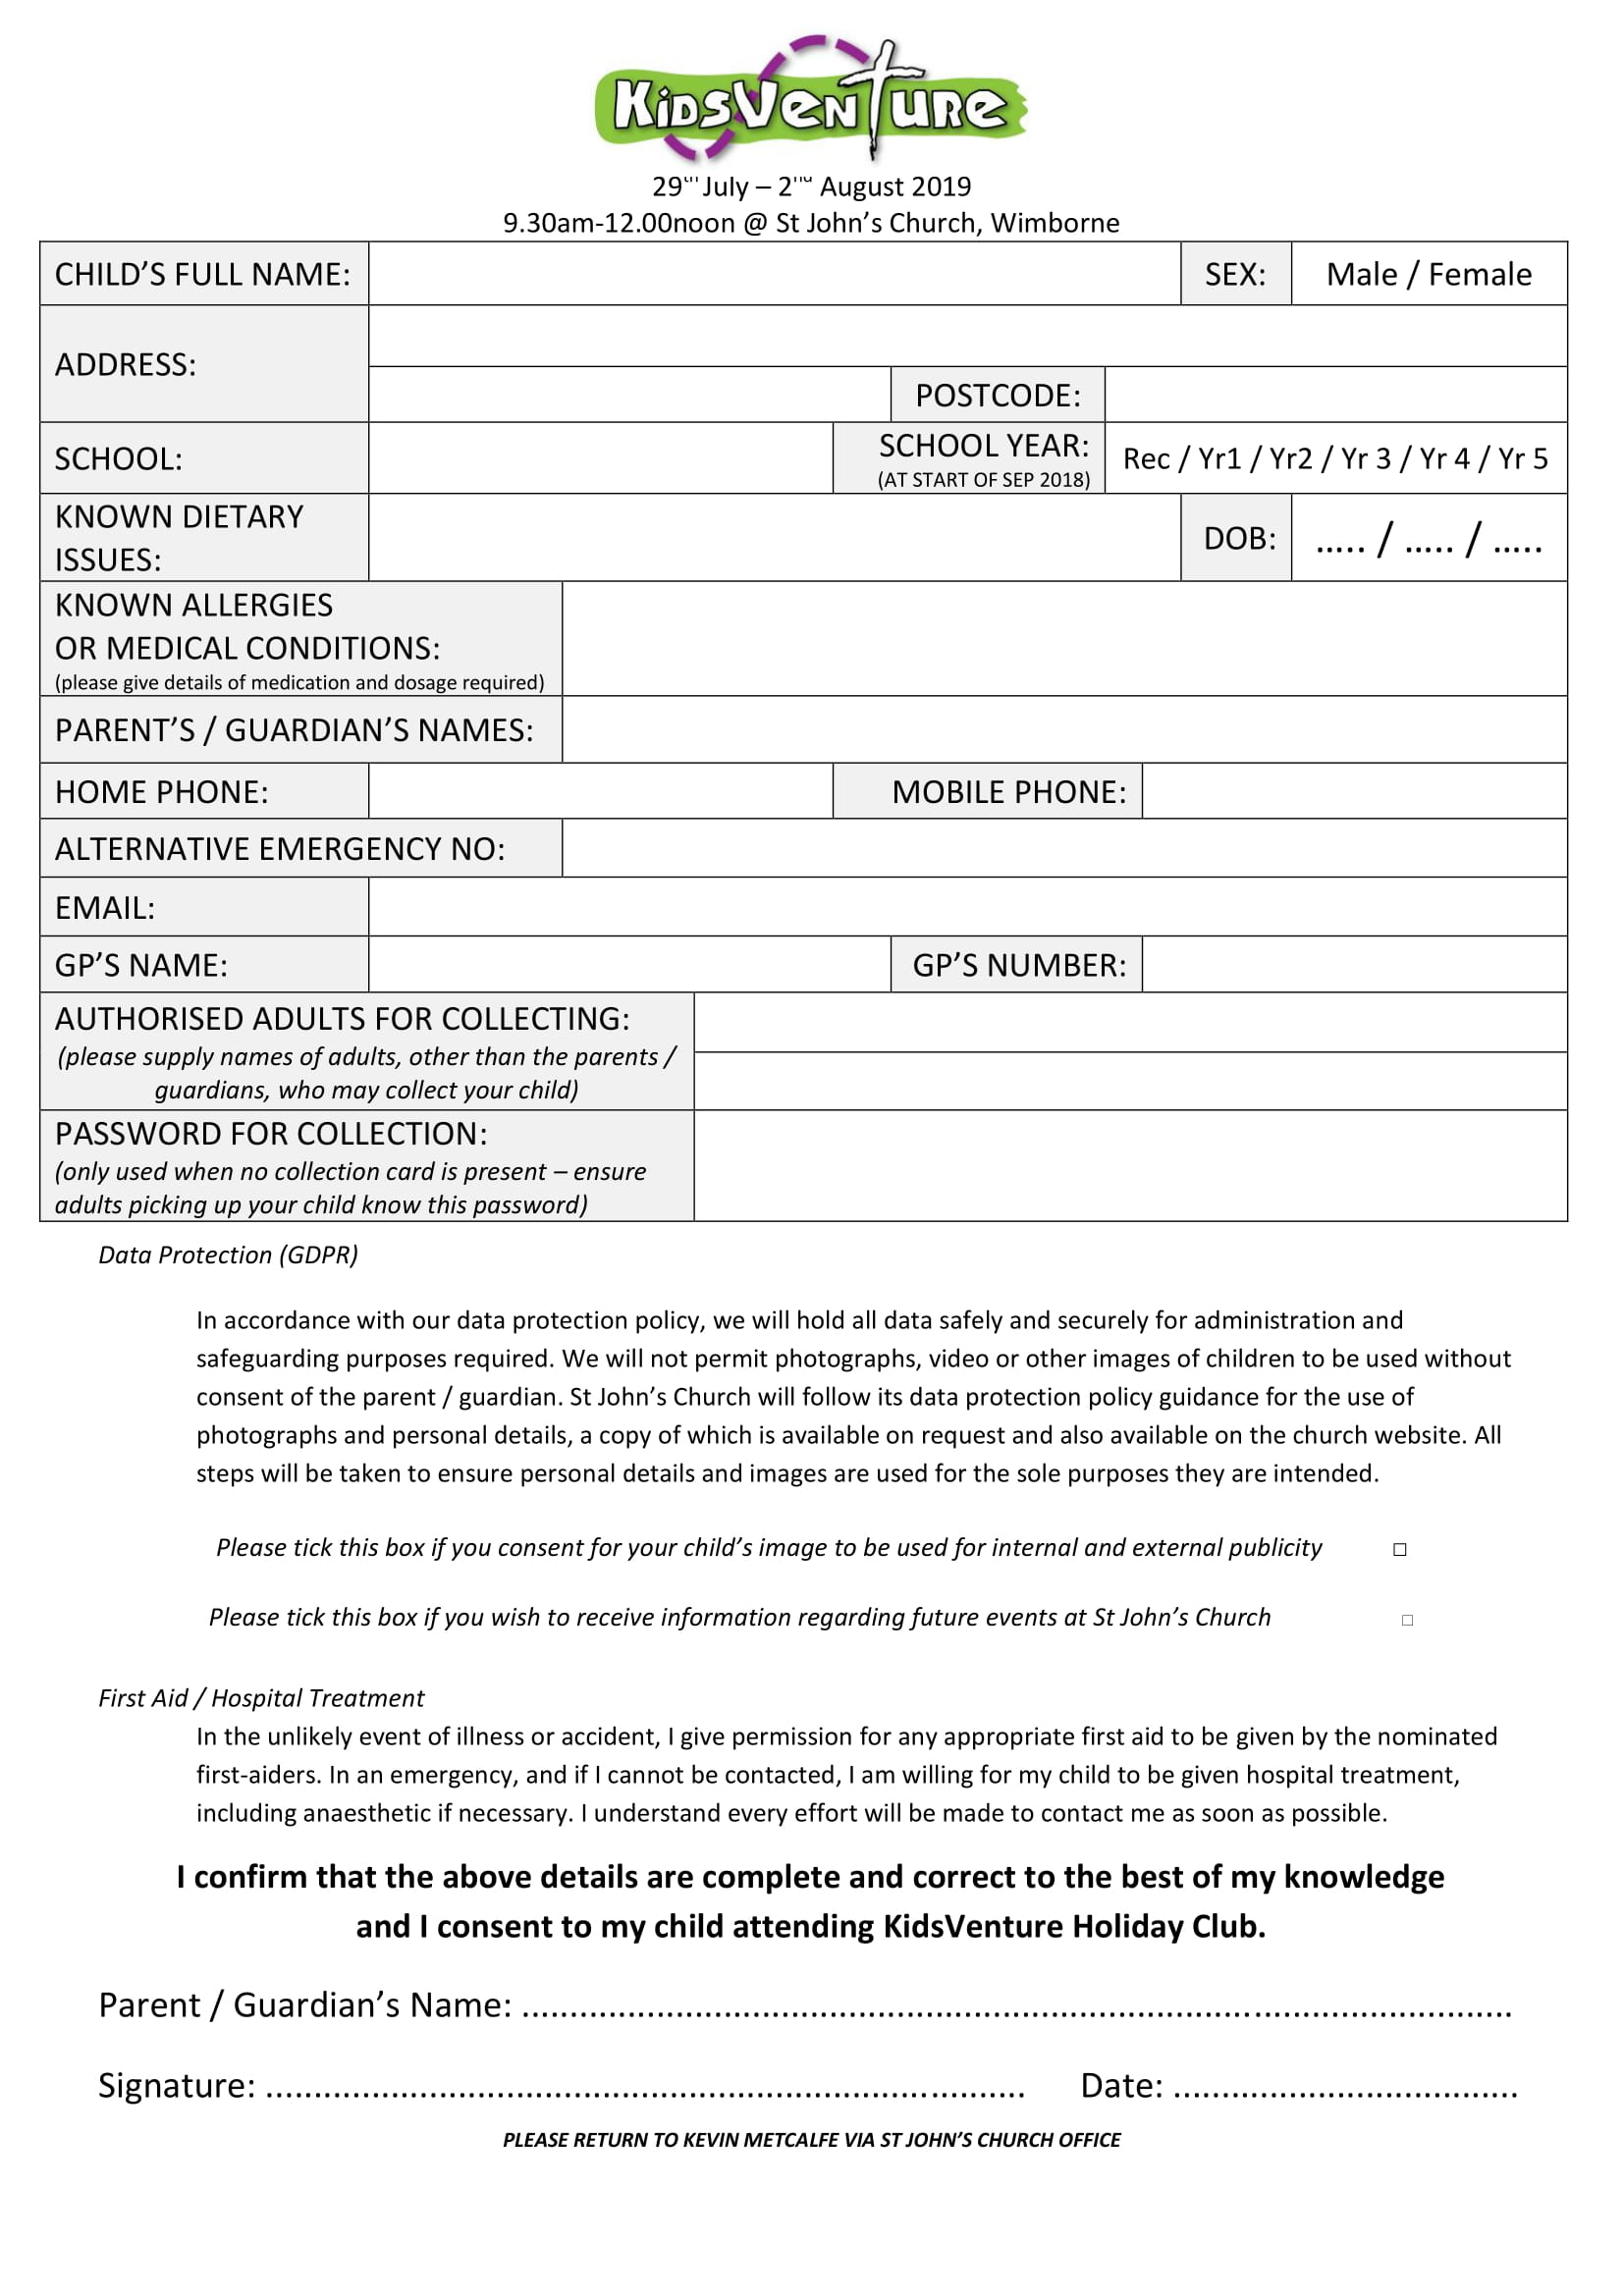 KidsVenture Booking/Consent Form 2019 pdf icon